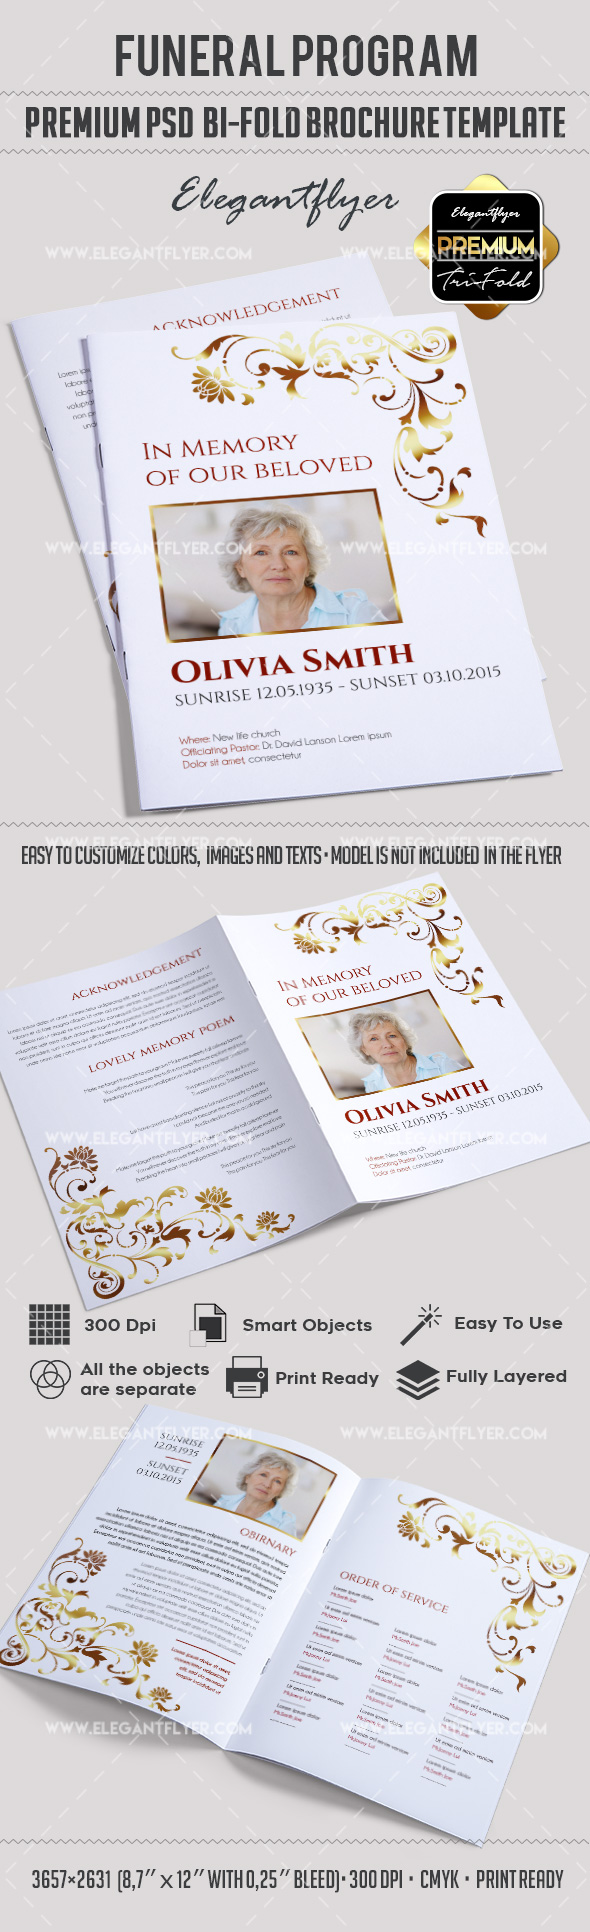 Brochure for funeral program template by elegantflyer for Funeral brochure templates free